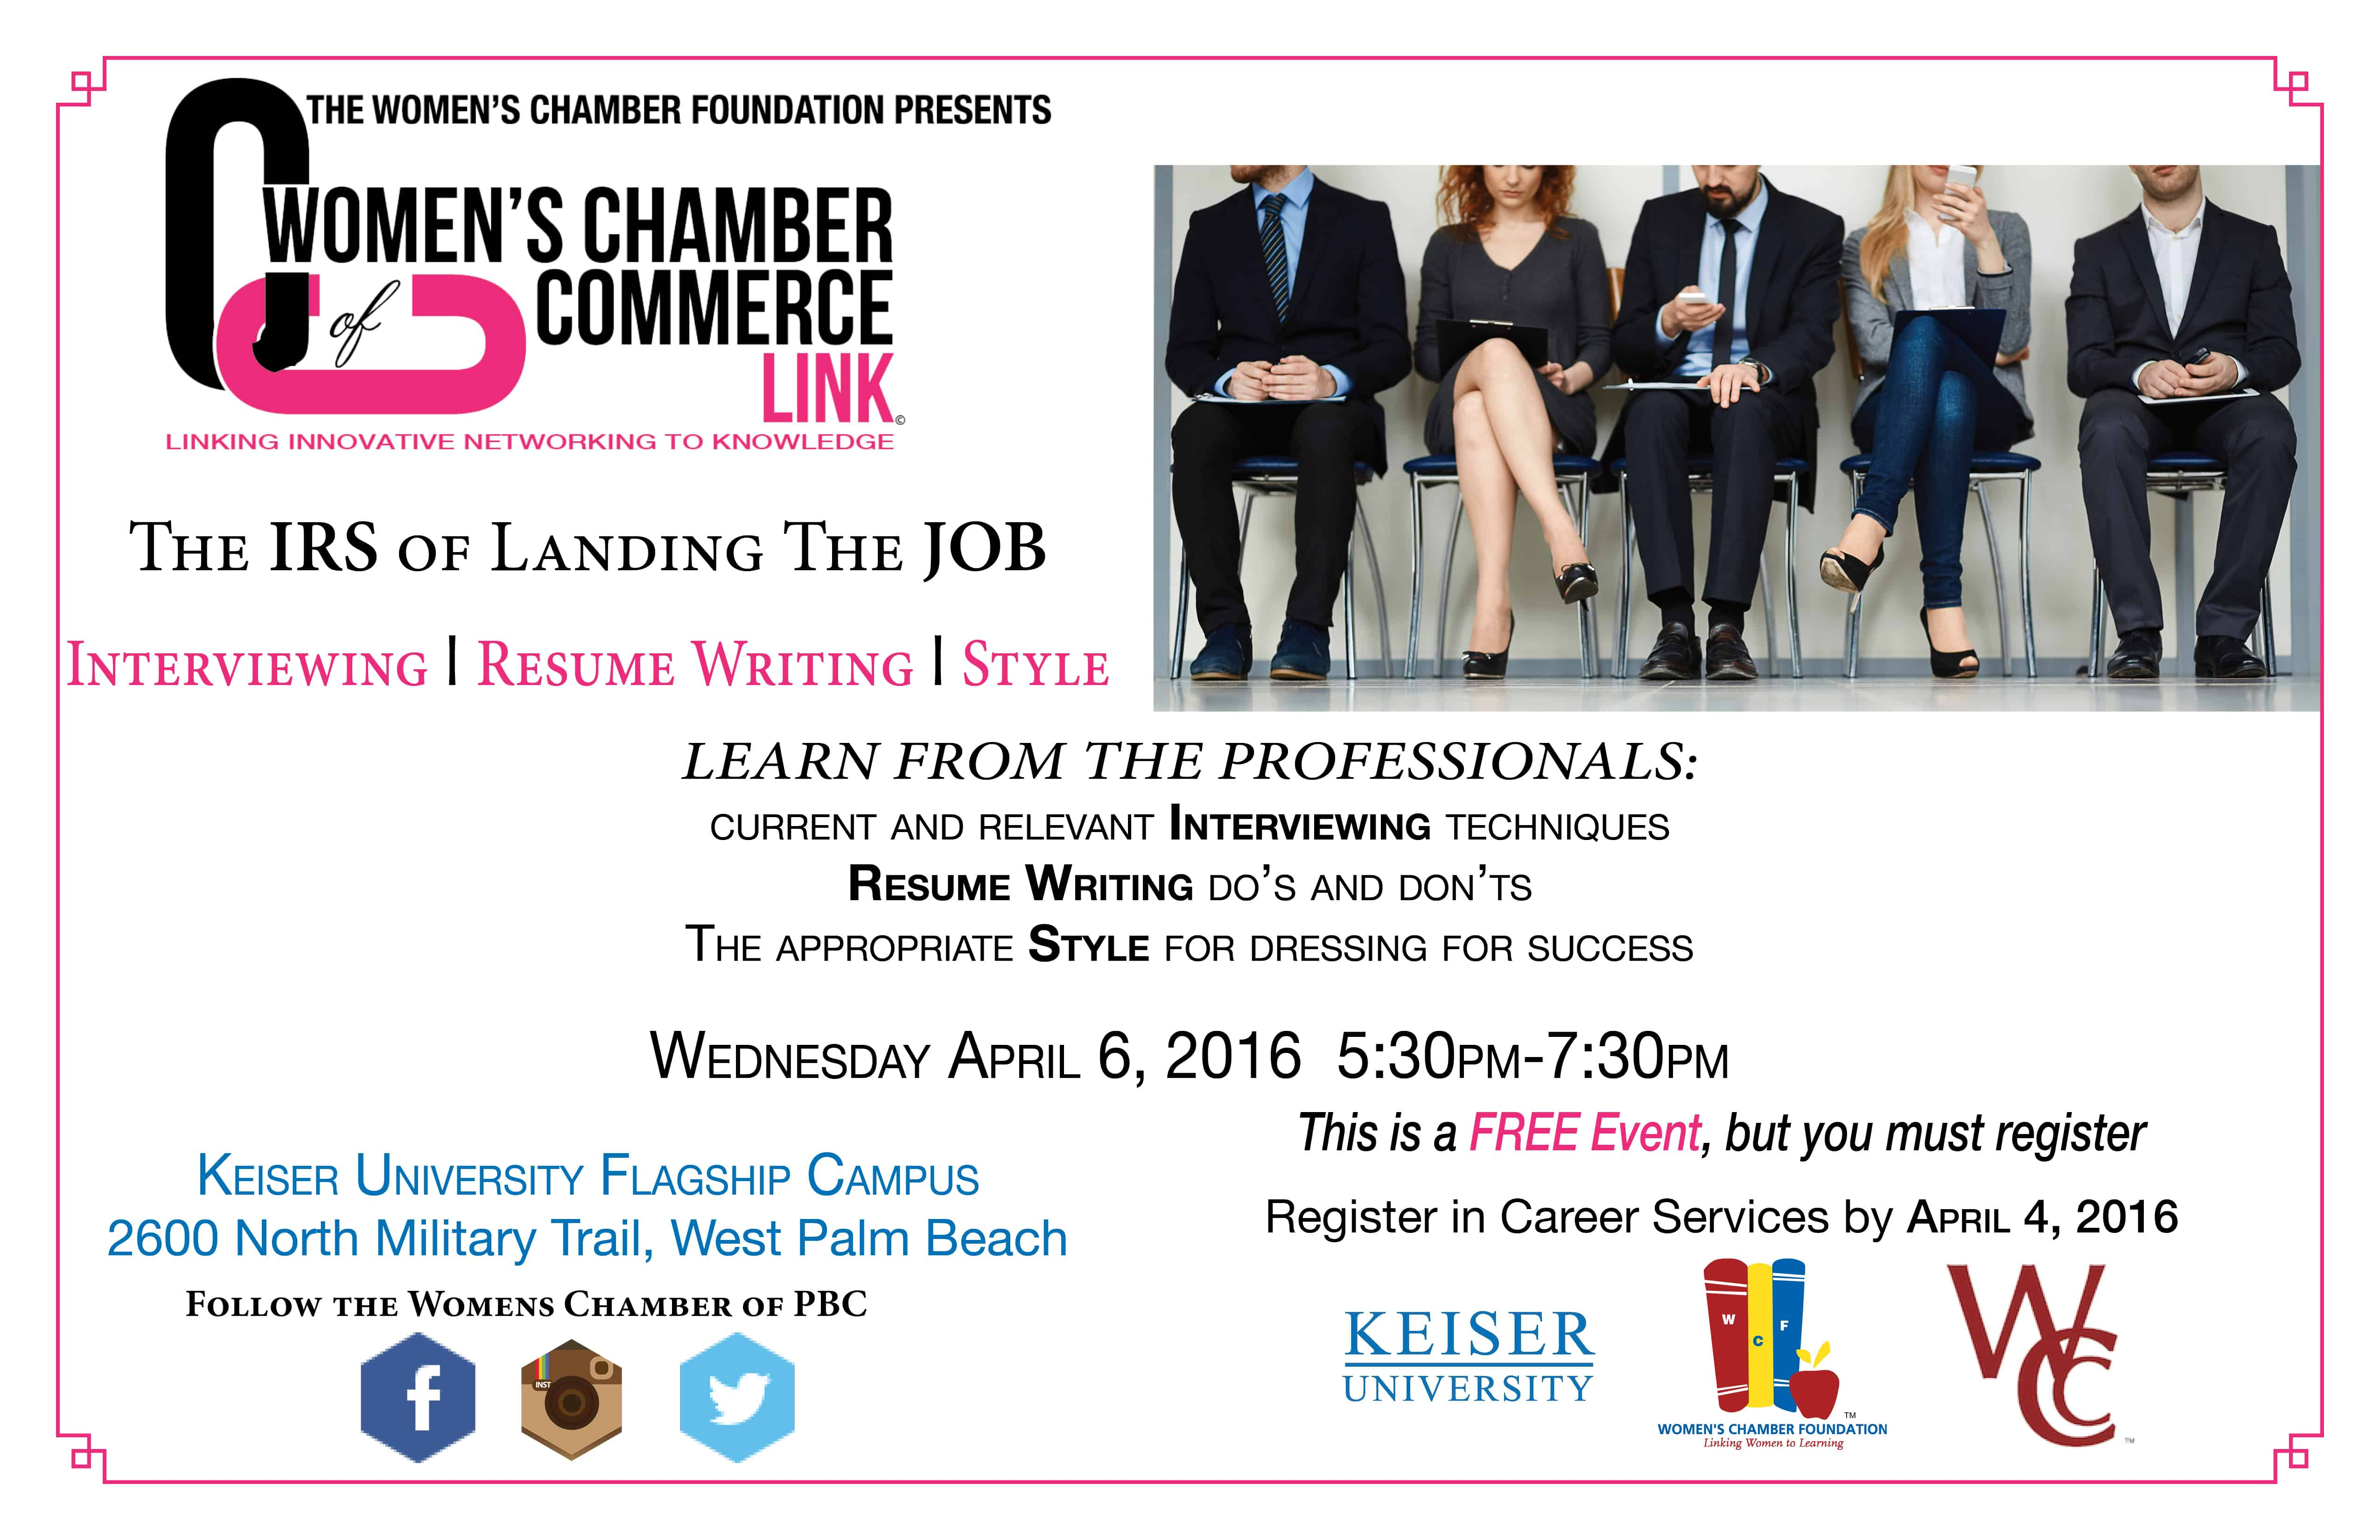 The Flagship Campus Partners with the Women's Chamber of Commerce